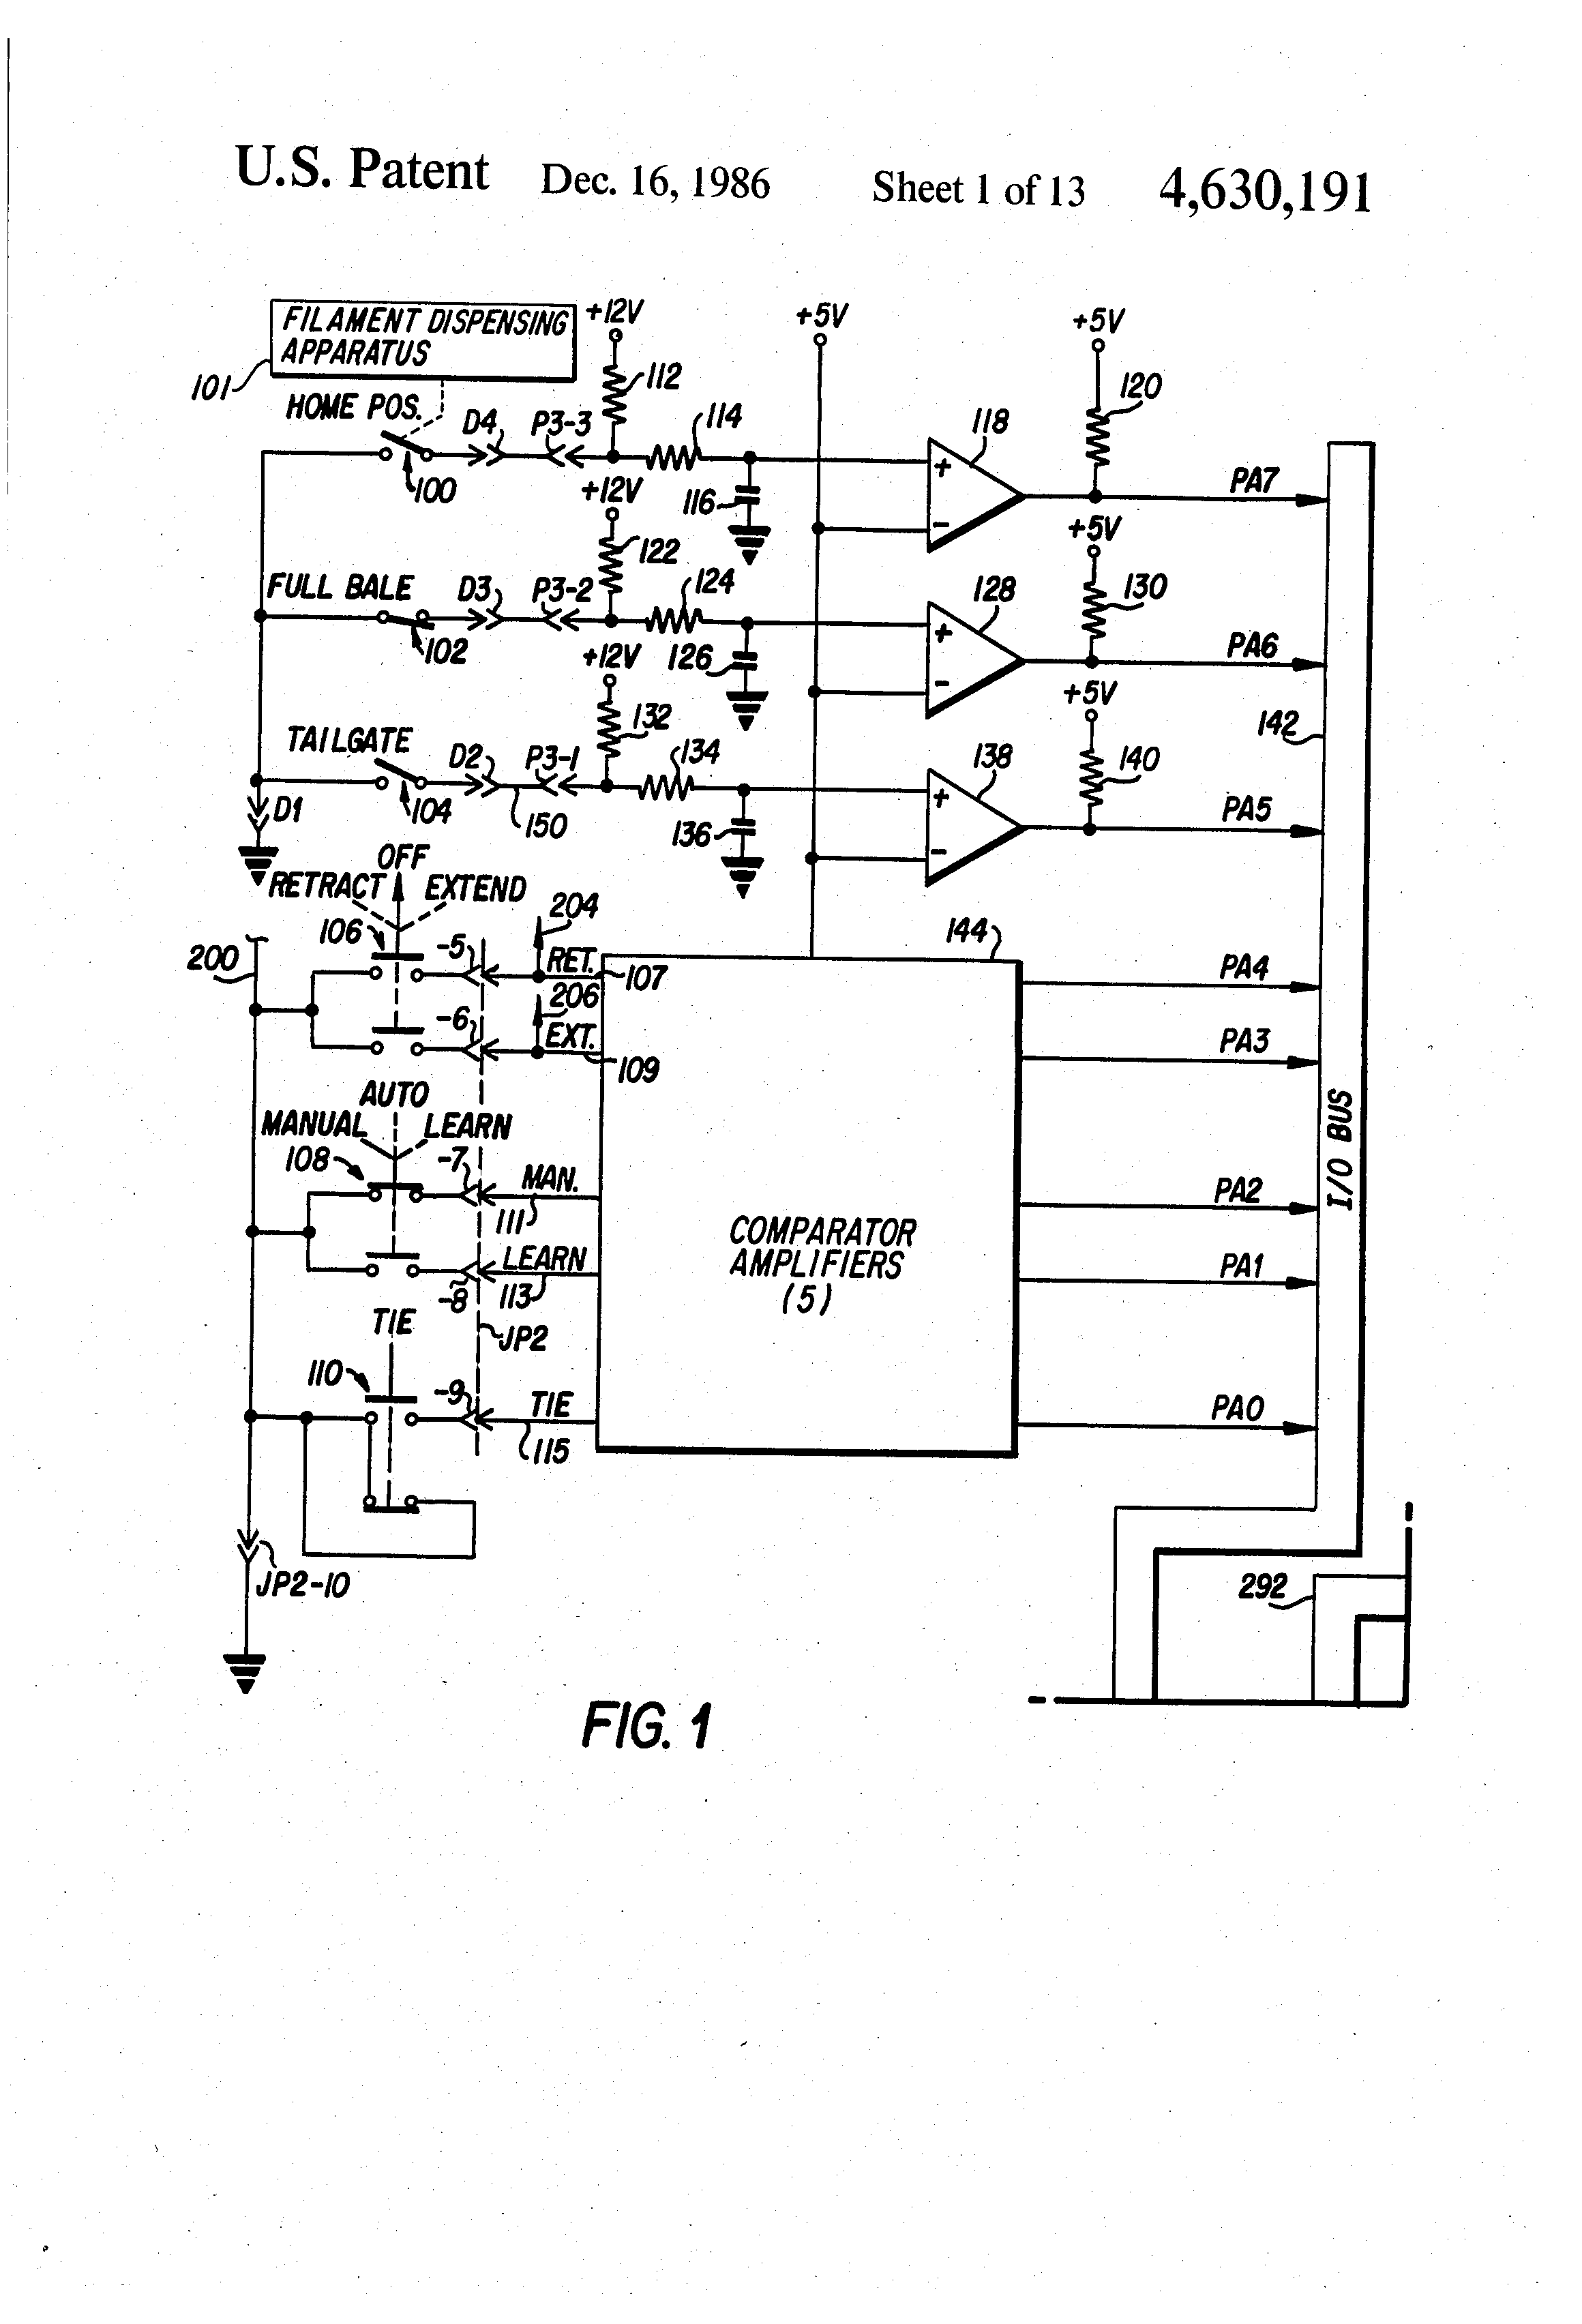 US4630191 1 wiring diagram for ford 5000 tractor the wiring diagram new holland tractor wire diagram at bakdesigns.co